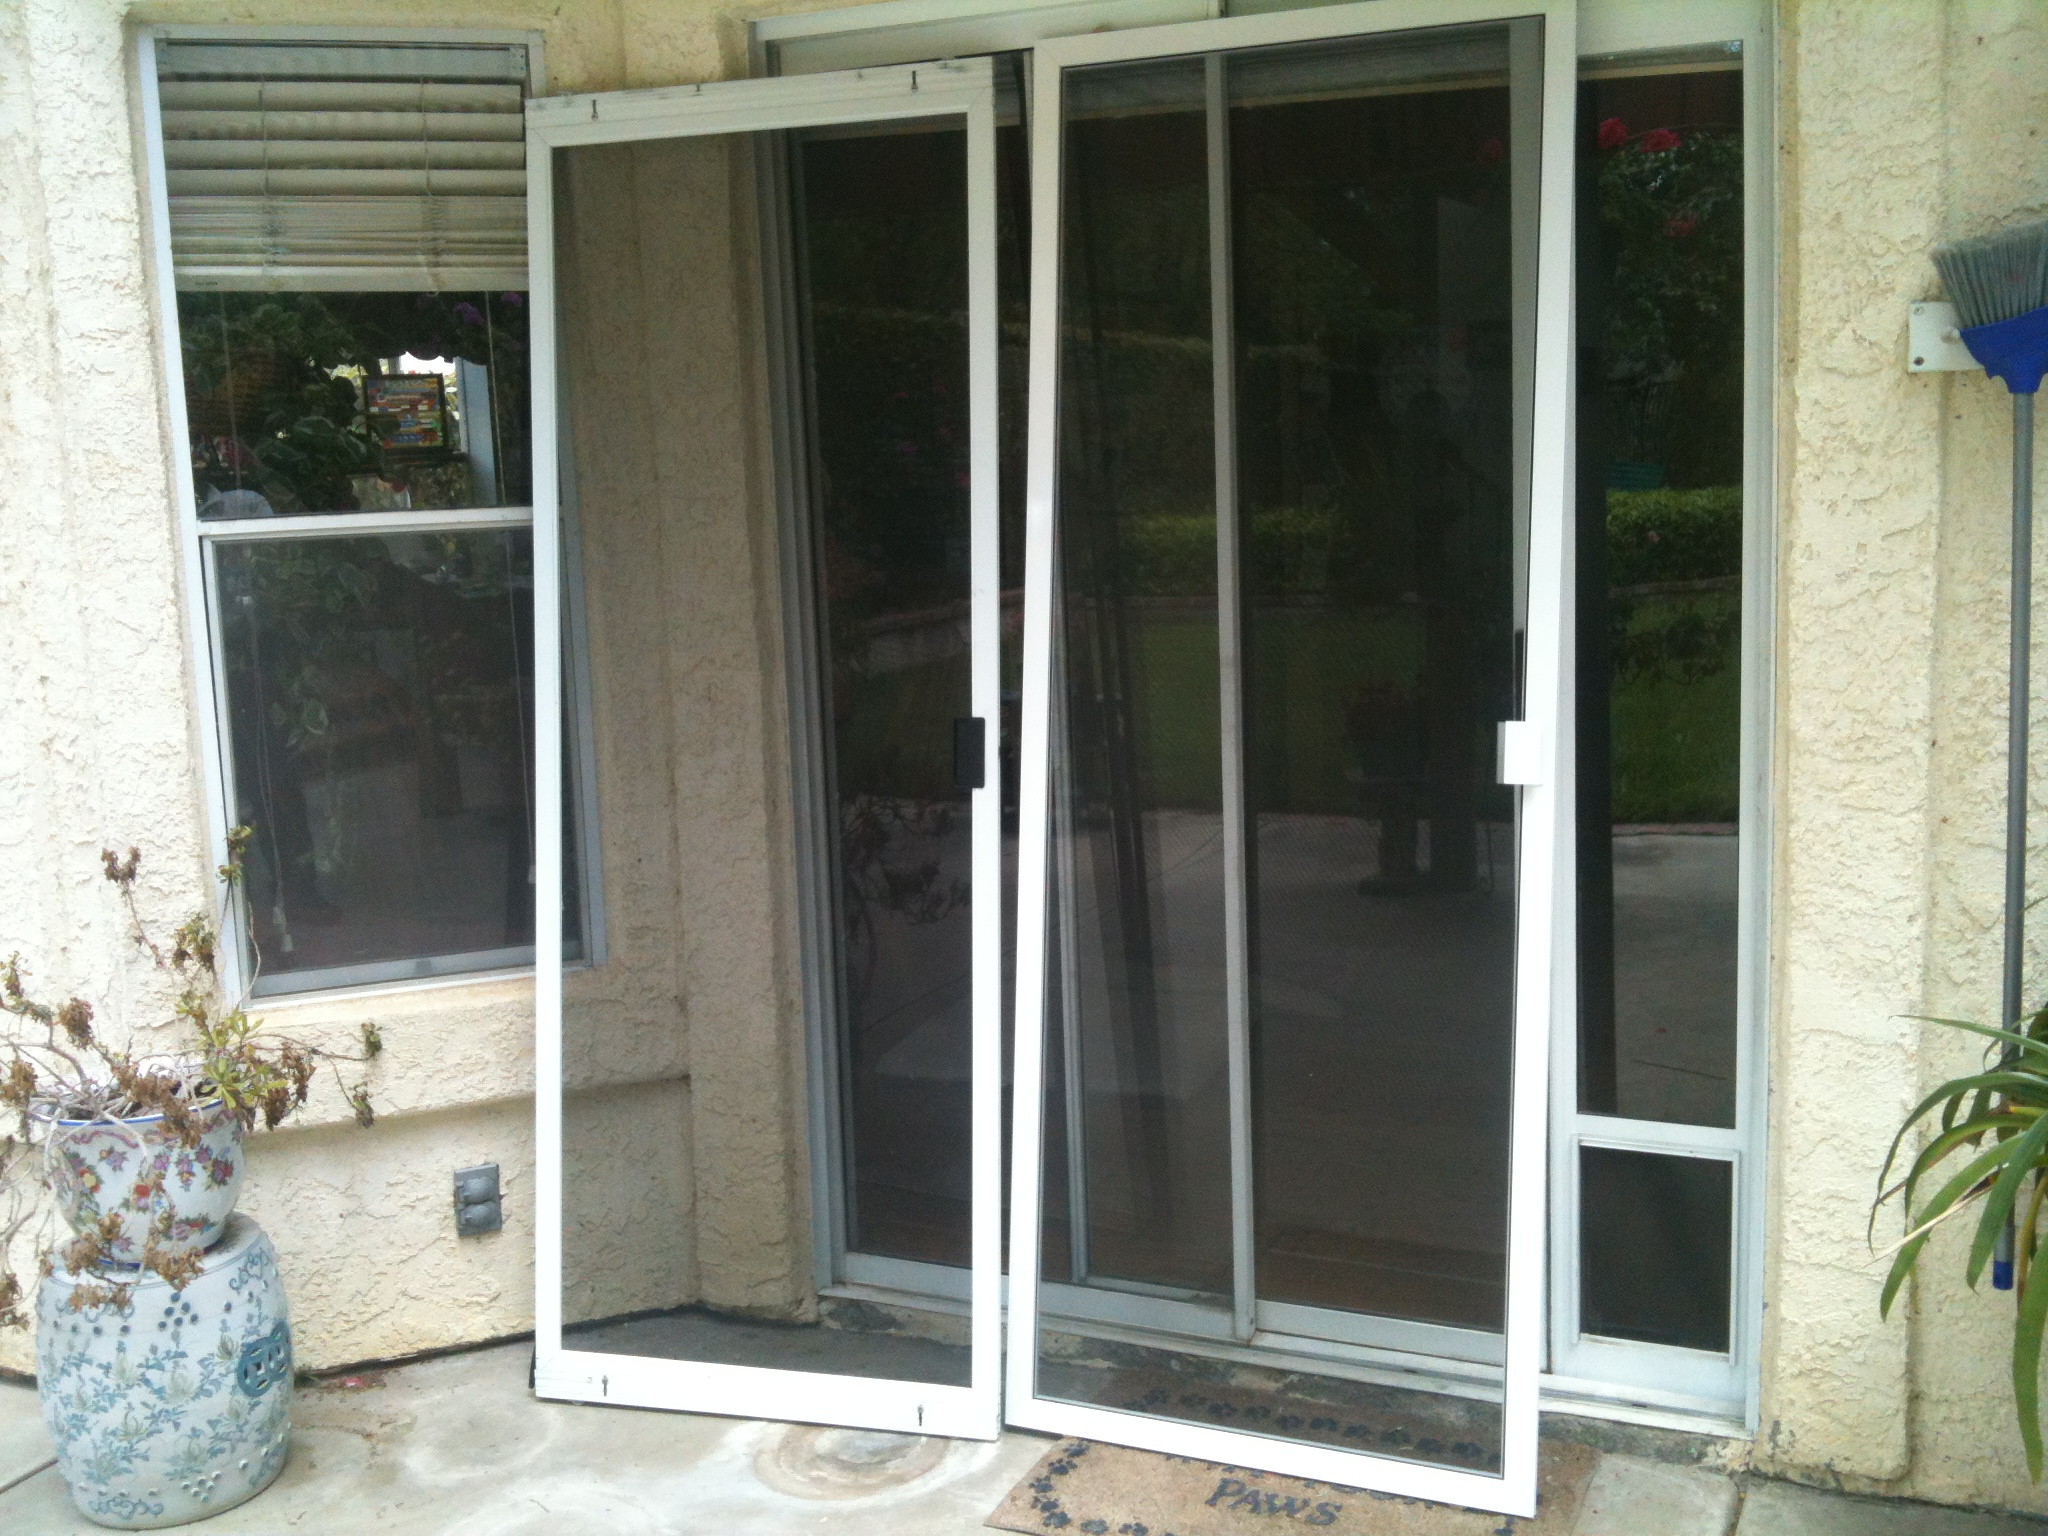 Sliding Screen Door Replacement sliding patio screen doors | screen door and window screen repair